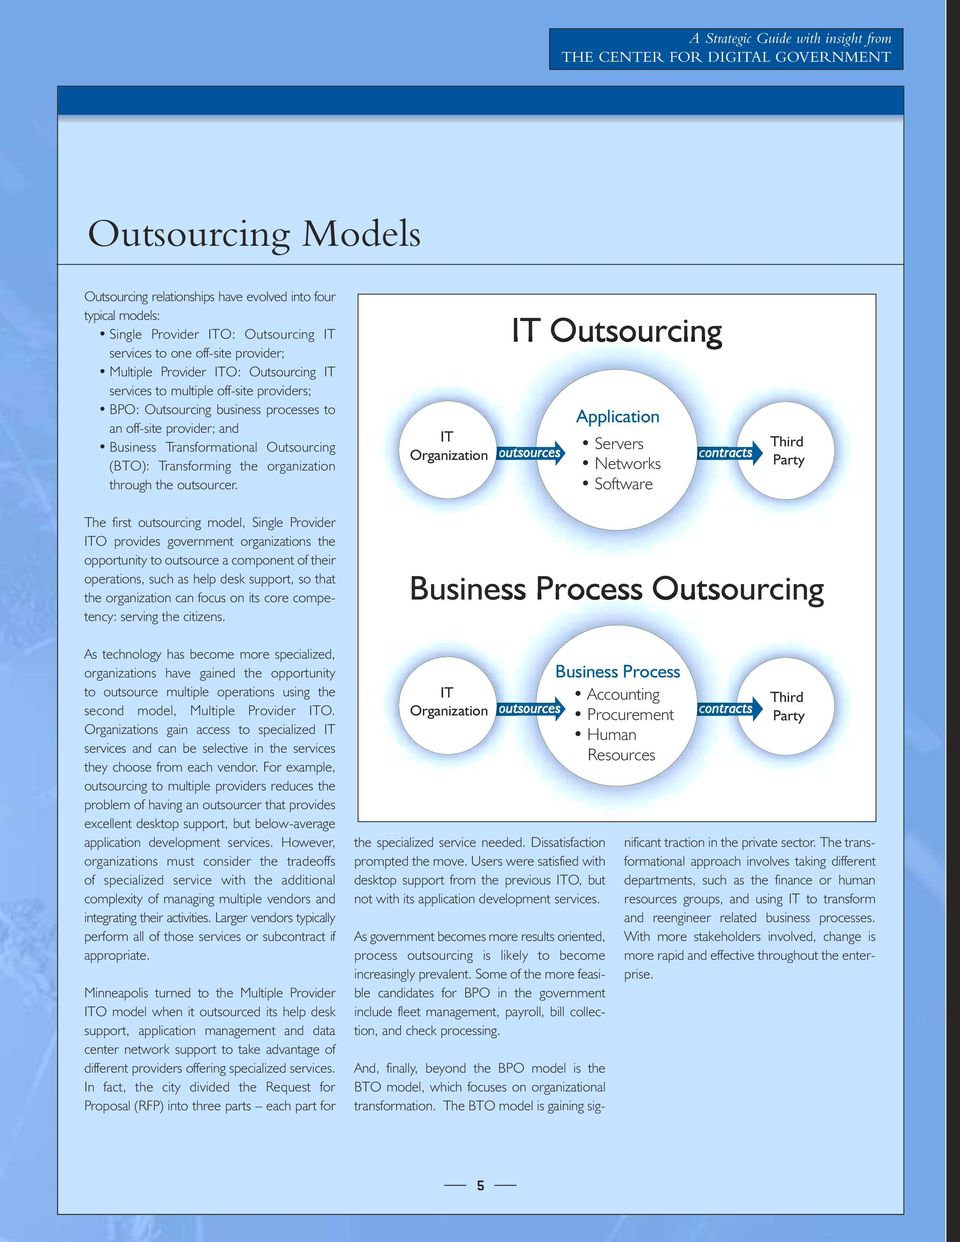 Outsourcing (BTO): Transforming the organization through the outsourcer.